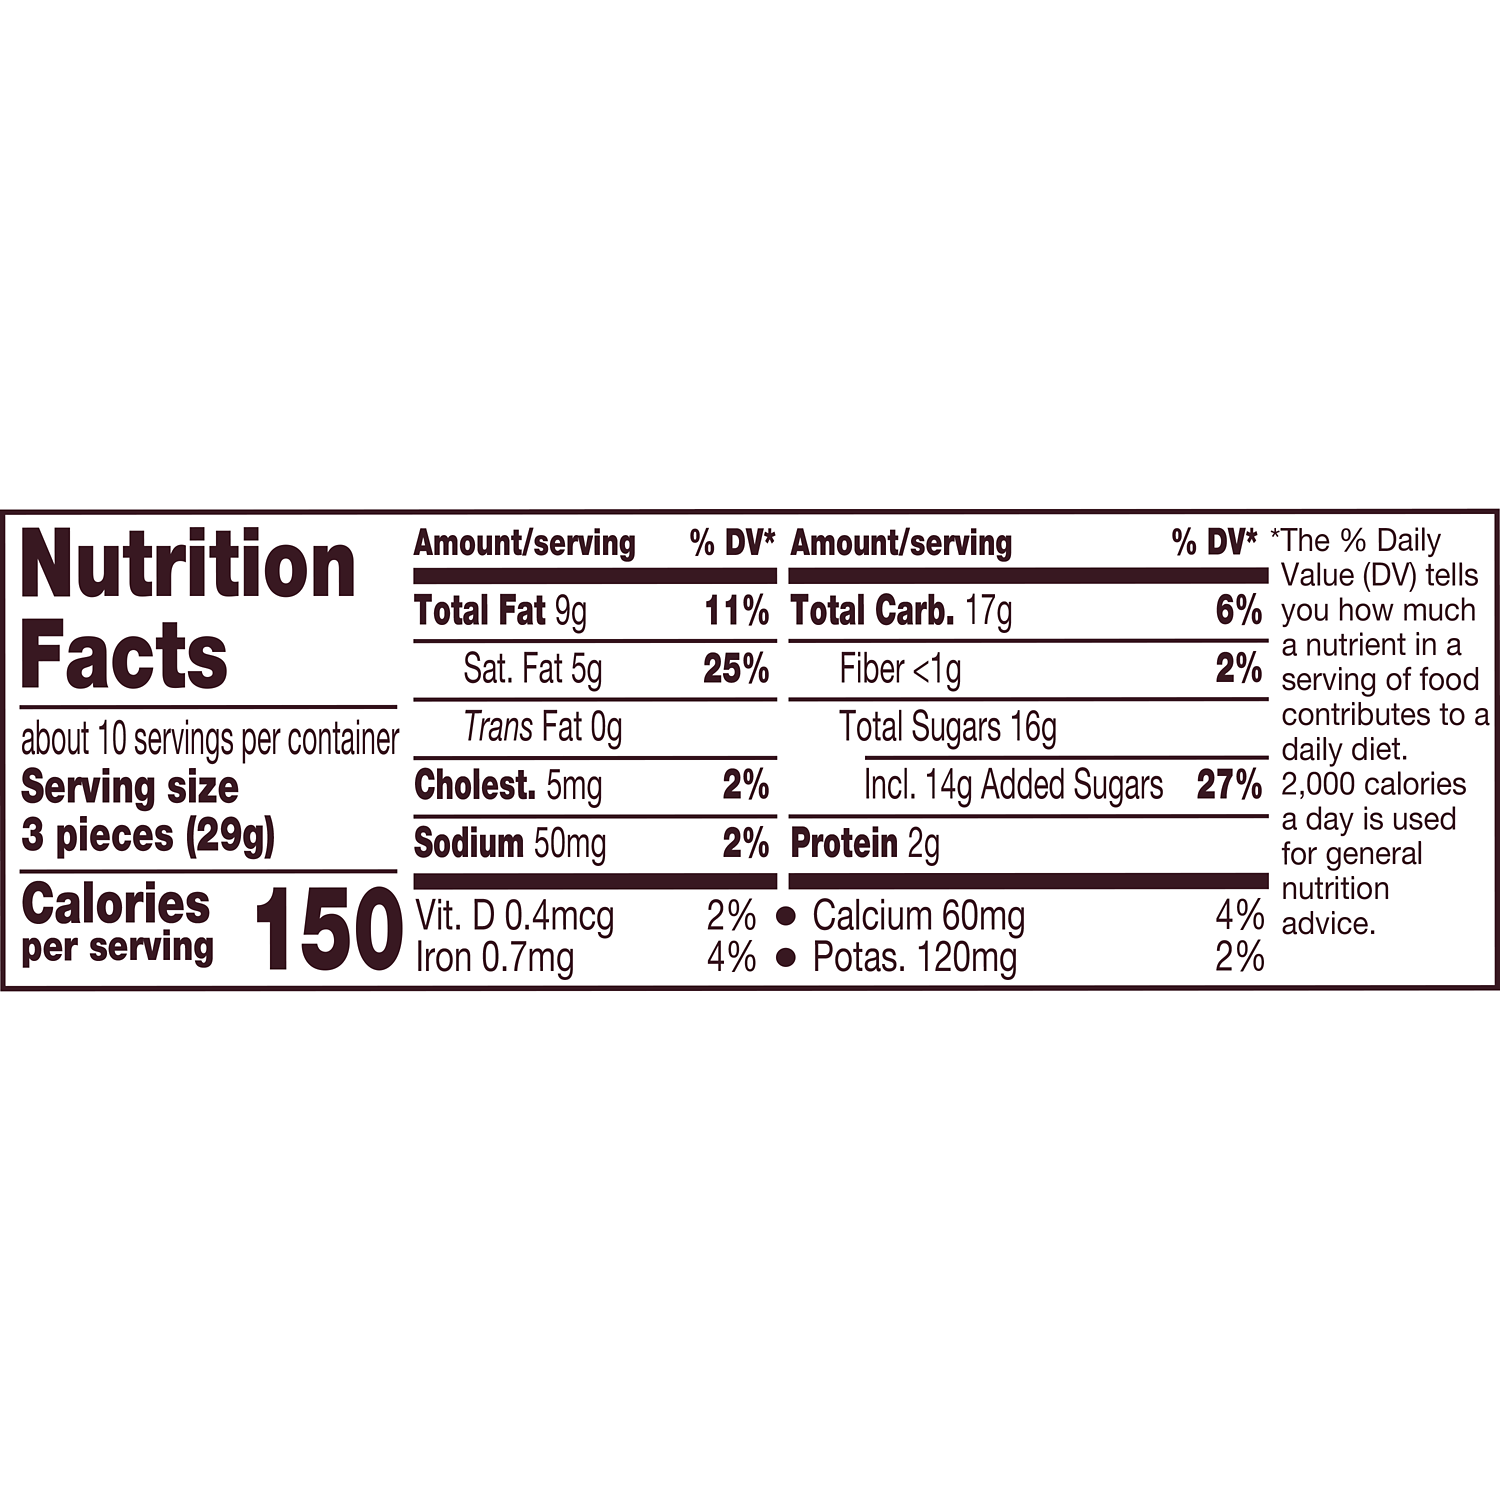 HERSHEY'S NUGGETS Extra Creamy Milk Chocolate with Toffee & Almonds Candy, 10.2 oz pack - Nutritional Facts